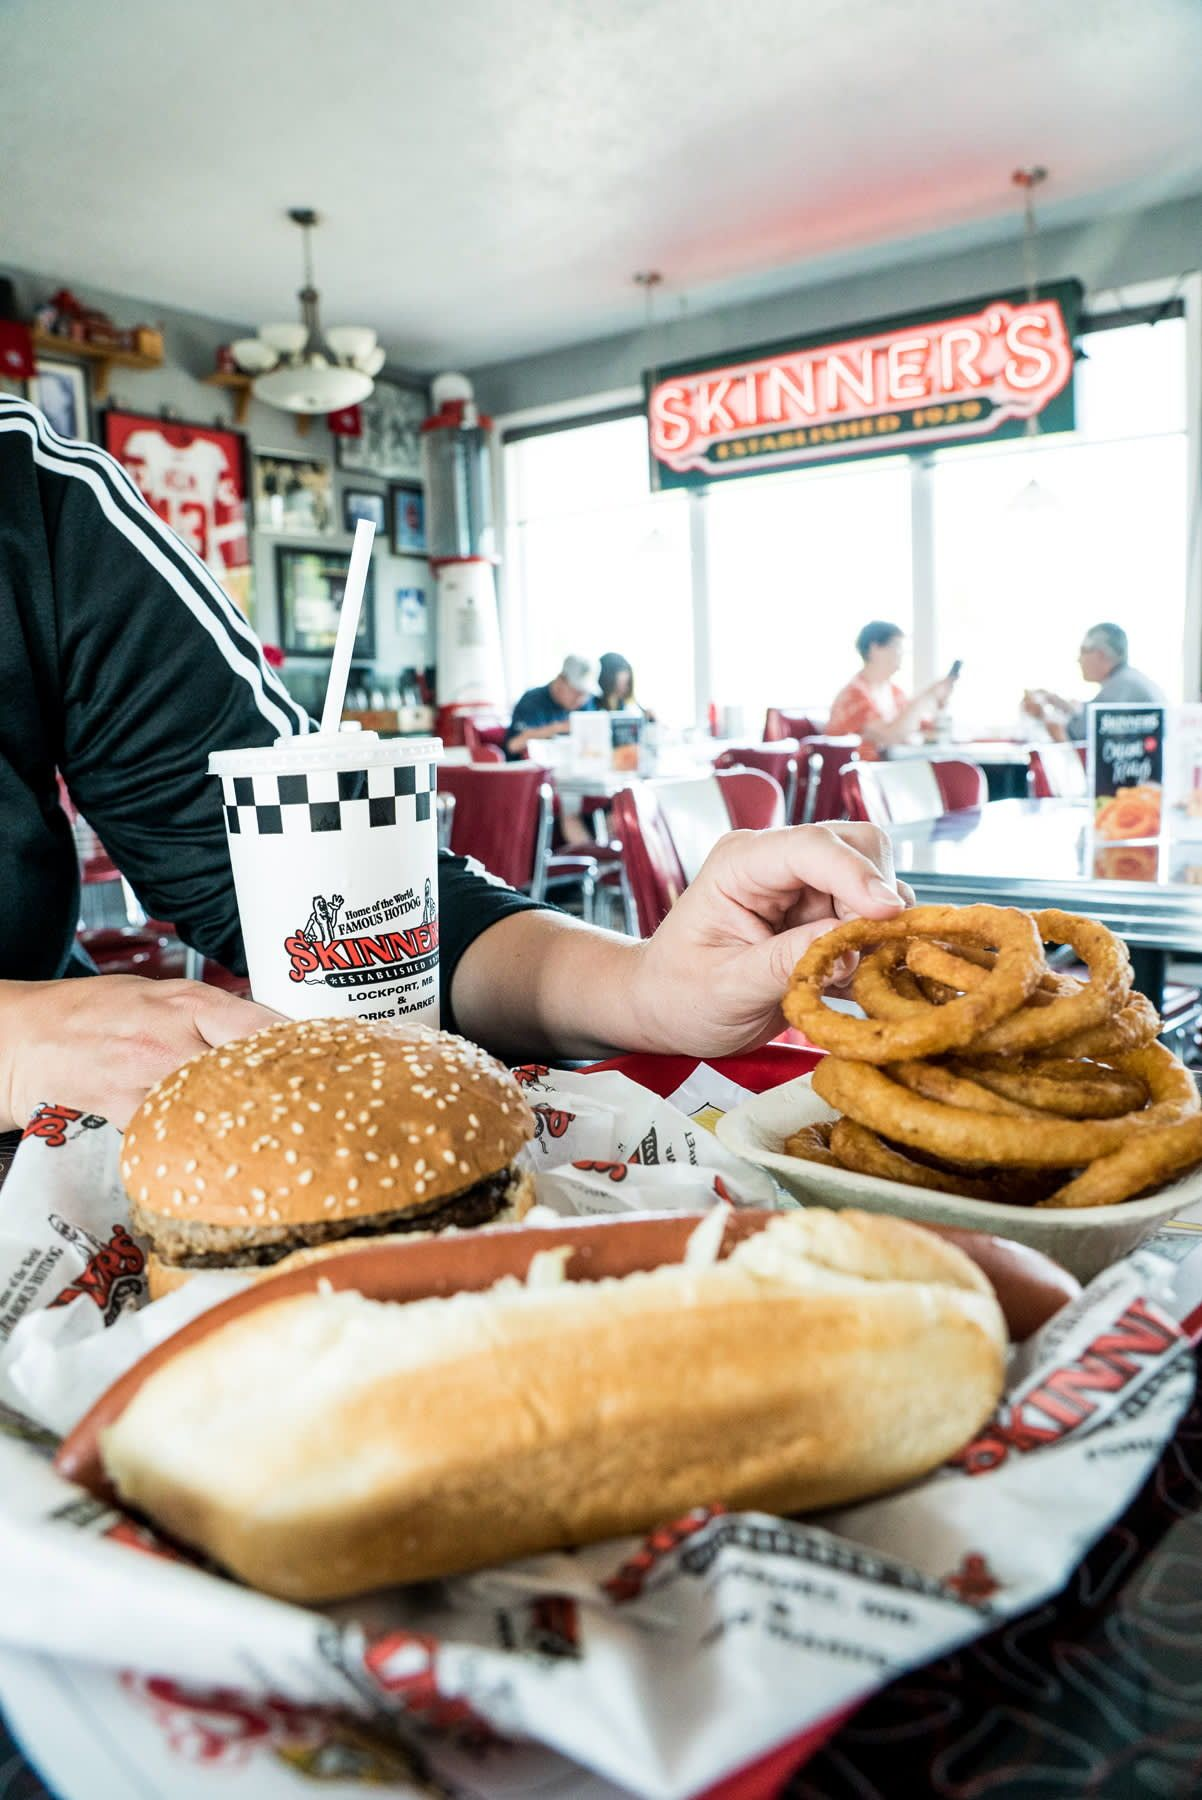 While You Re In Lockport You Ve Got To Stop By Skinner S For A Hot Dog Burger Milkshake Onion Rings Ok Maybe Anything They Canada Food South Beach Day Trip